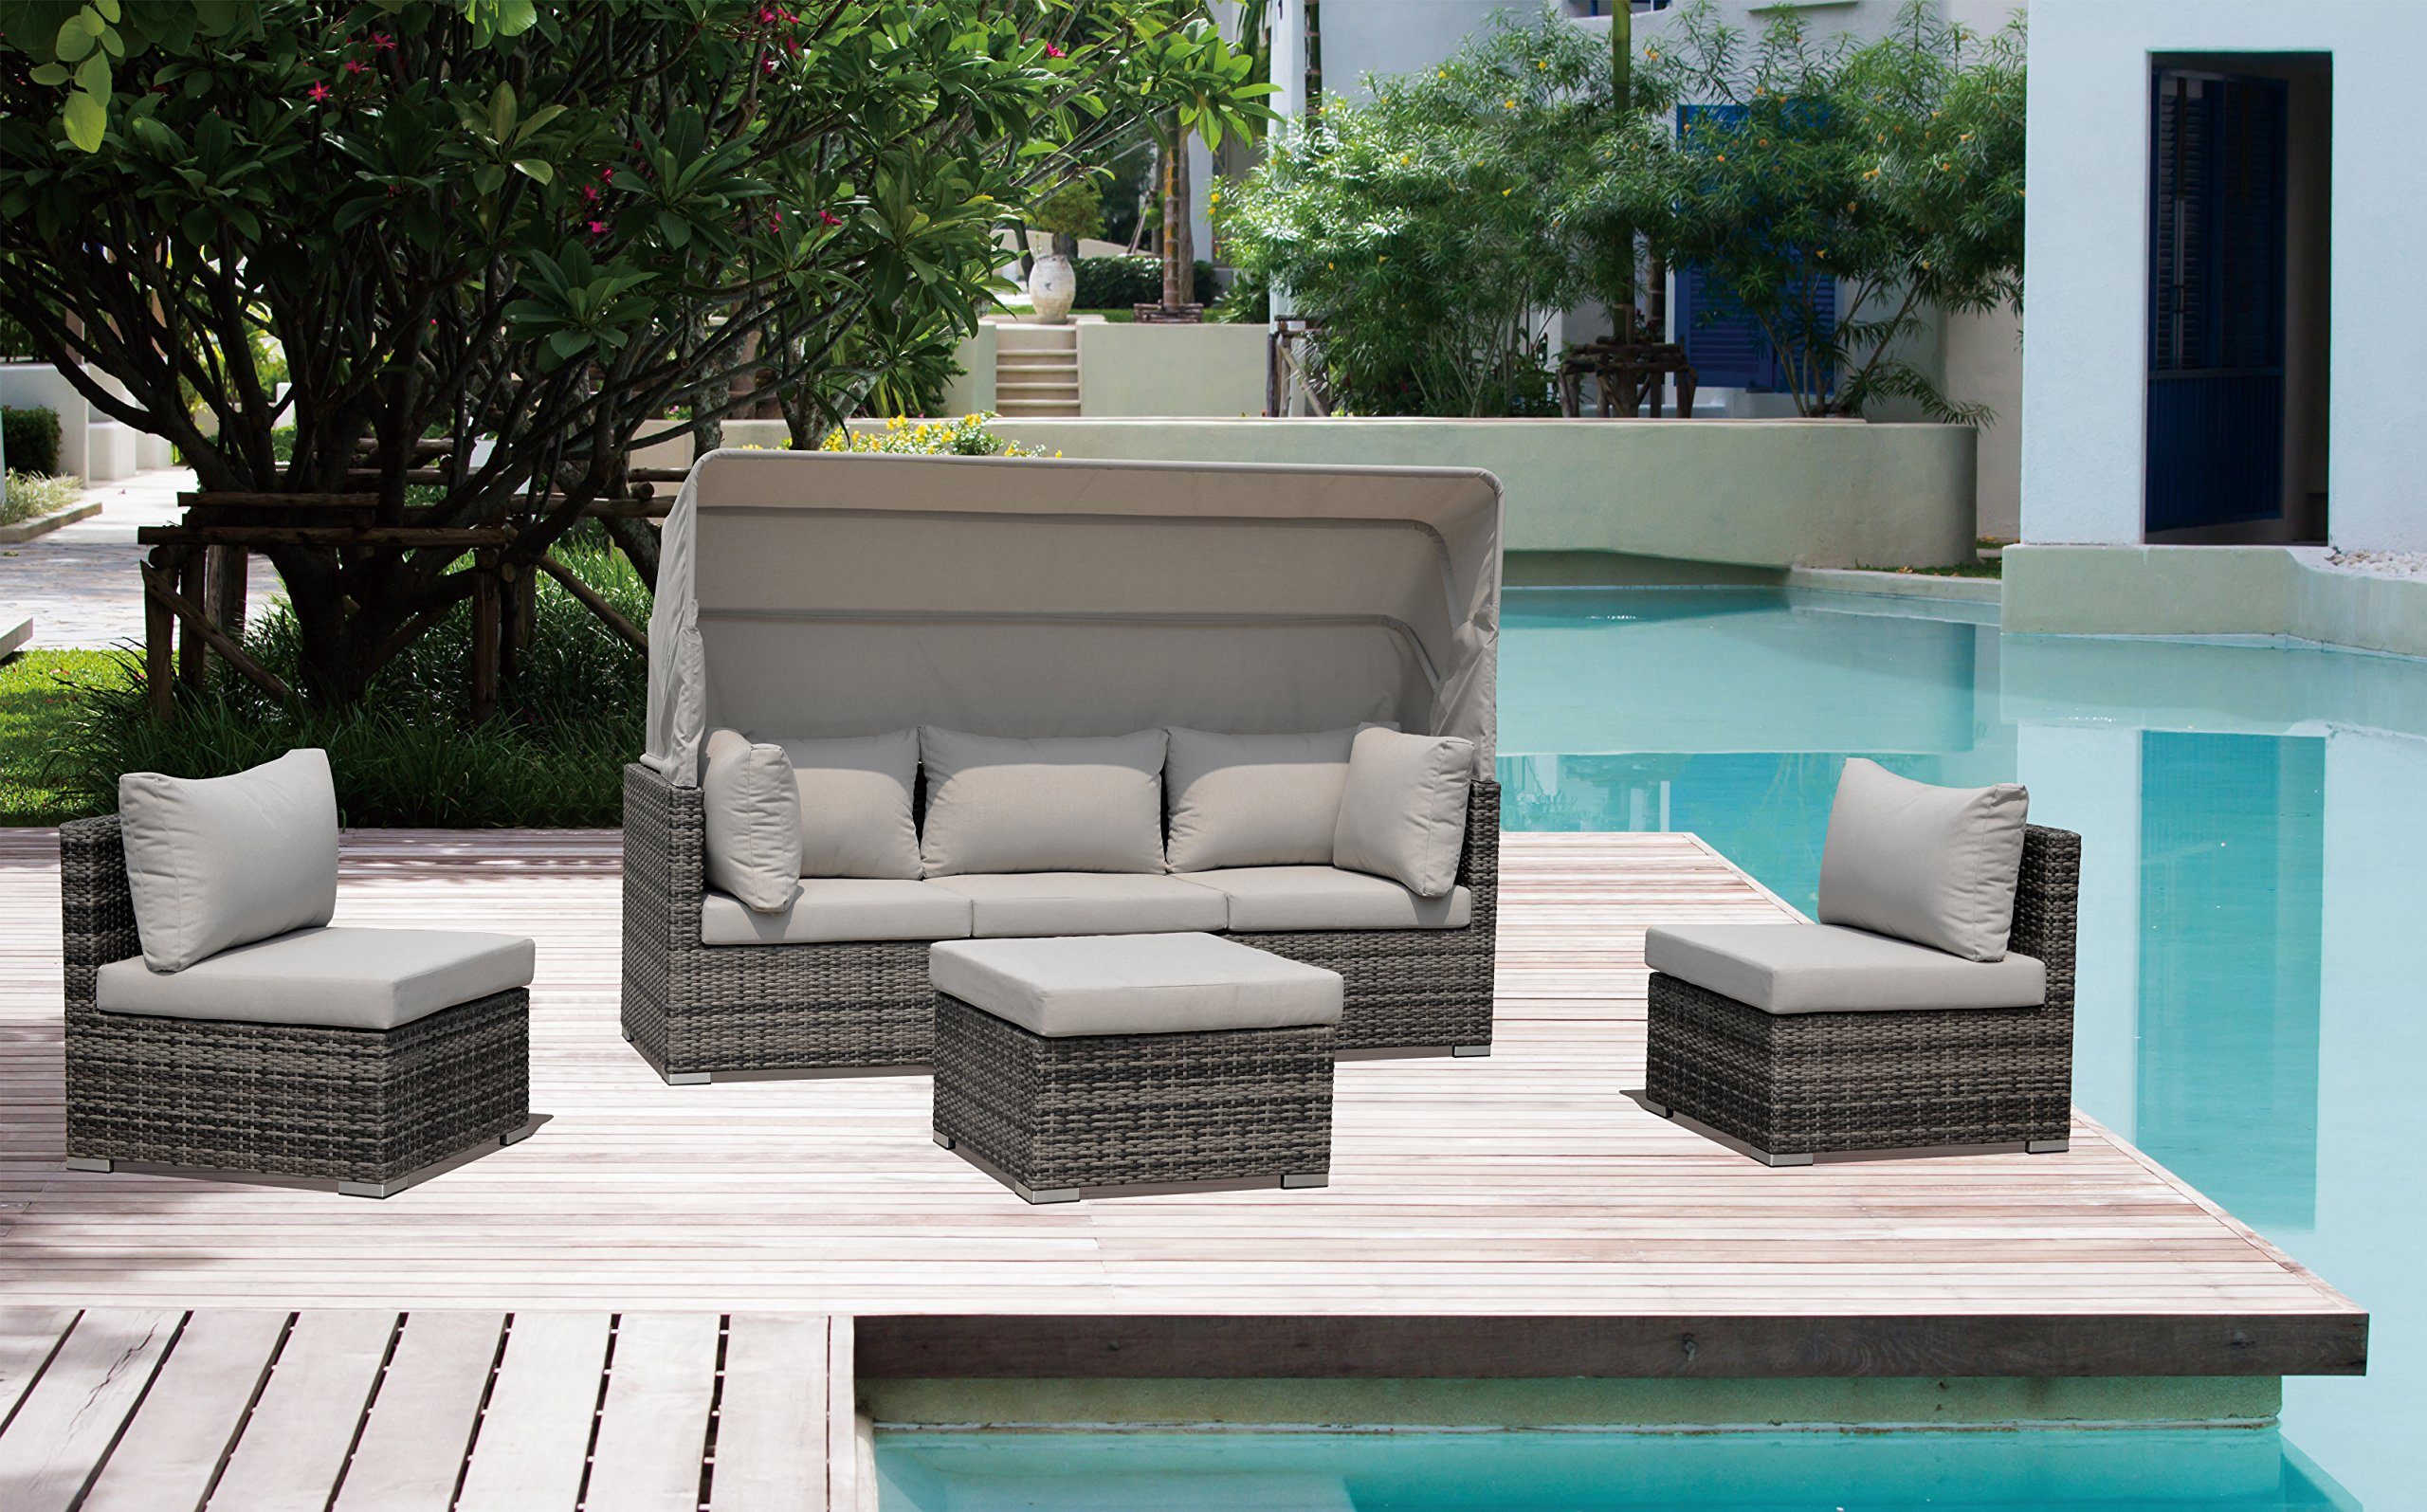 Courtyard Casual Taupe Aurora Outdoor Sectional to Daybed Combo with Canopy